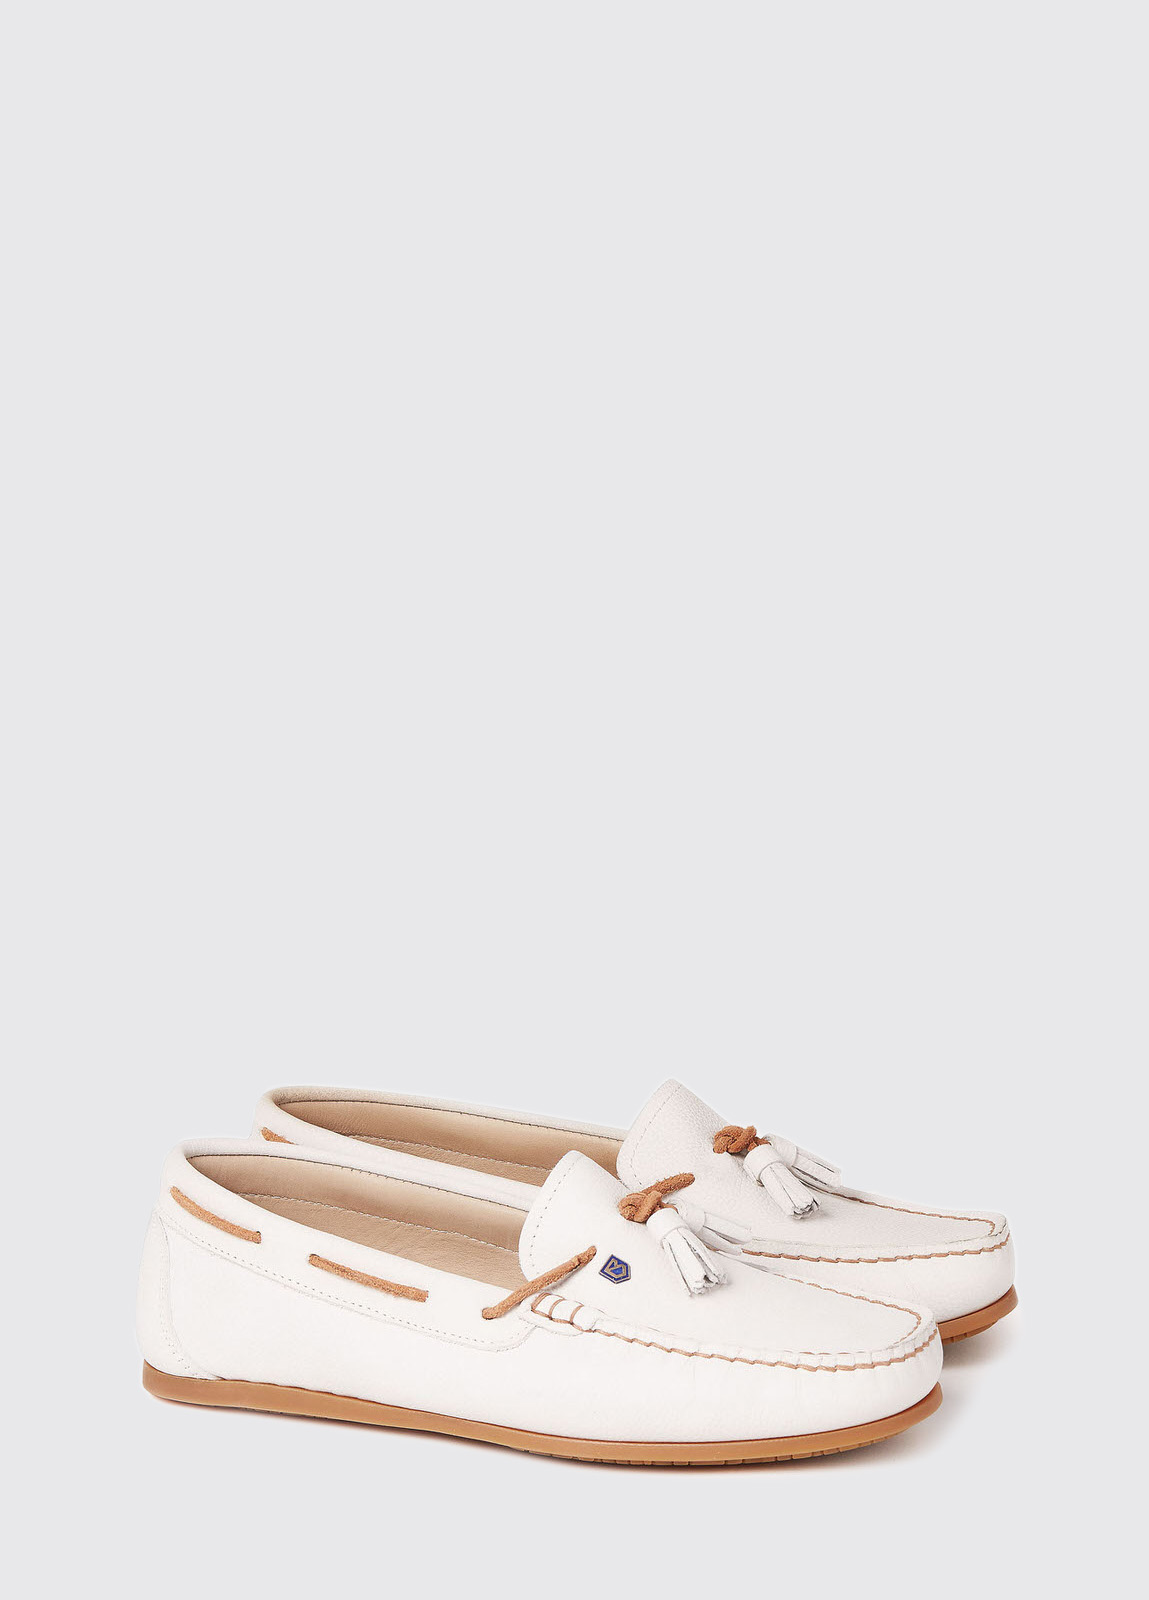 Jamaica Loafer - Sail White